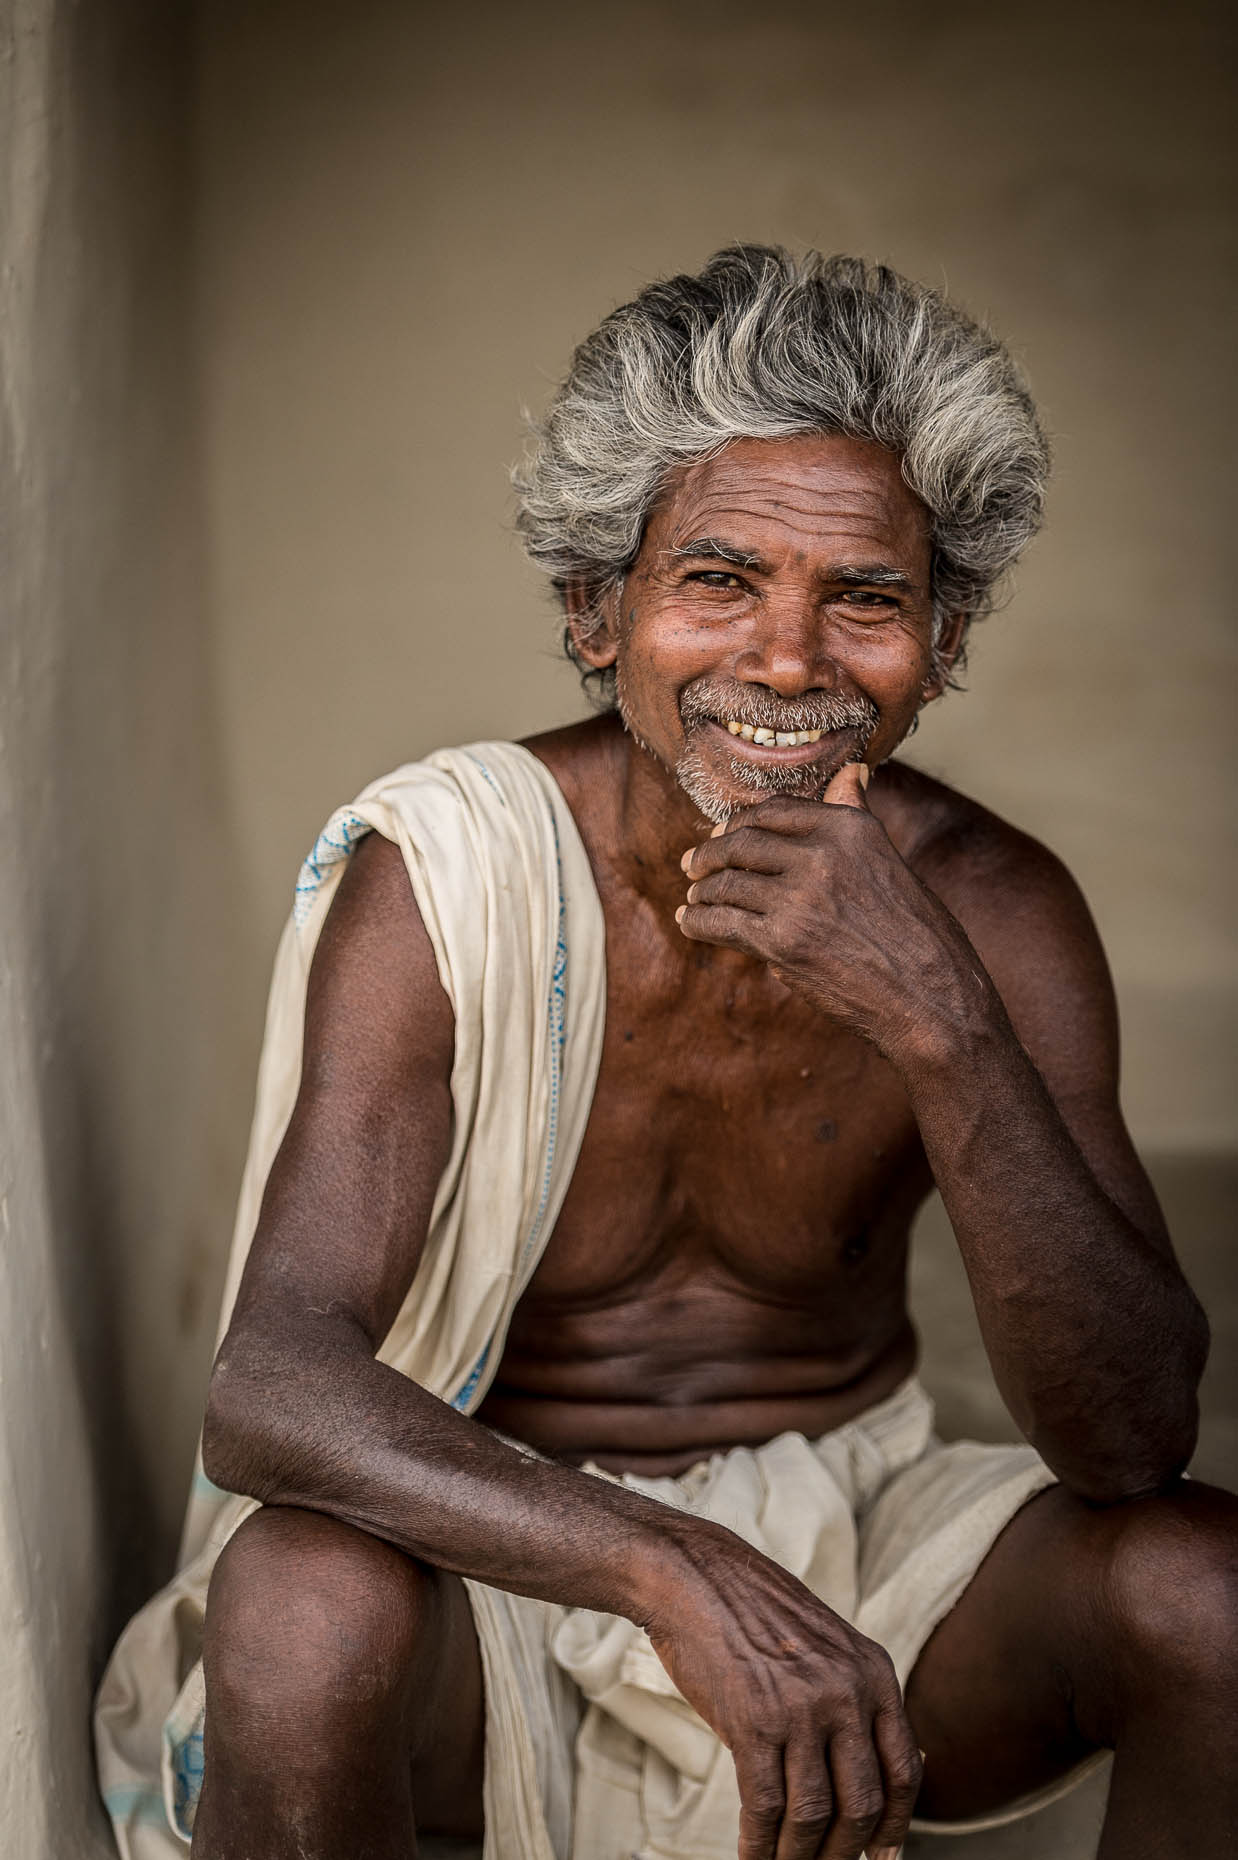 Portrait-smiling-man-India